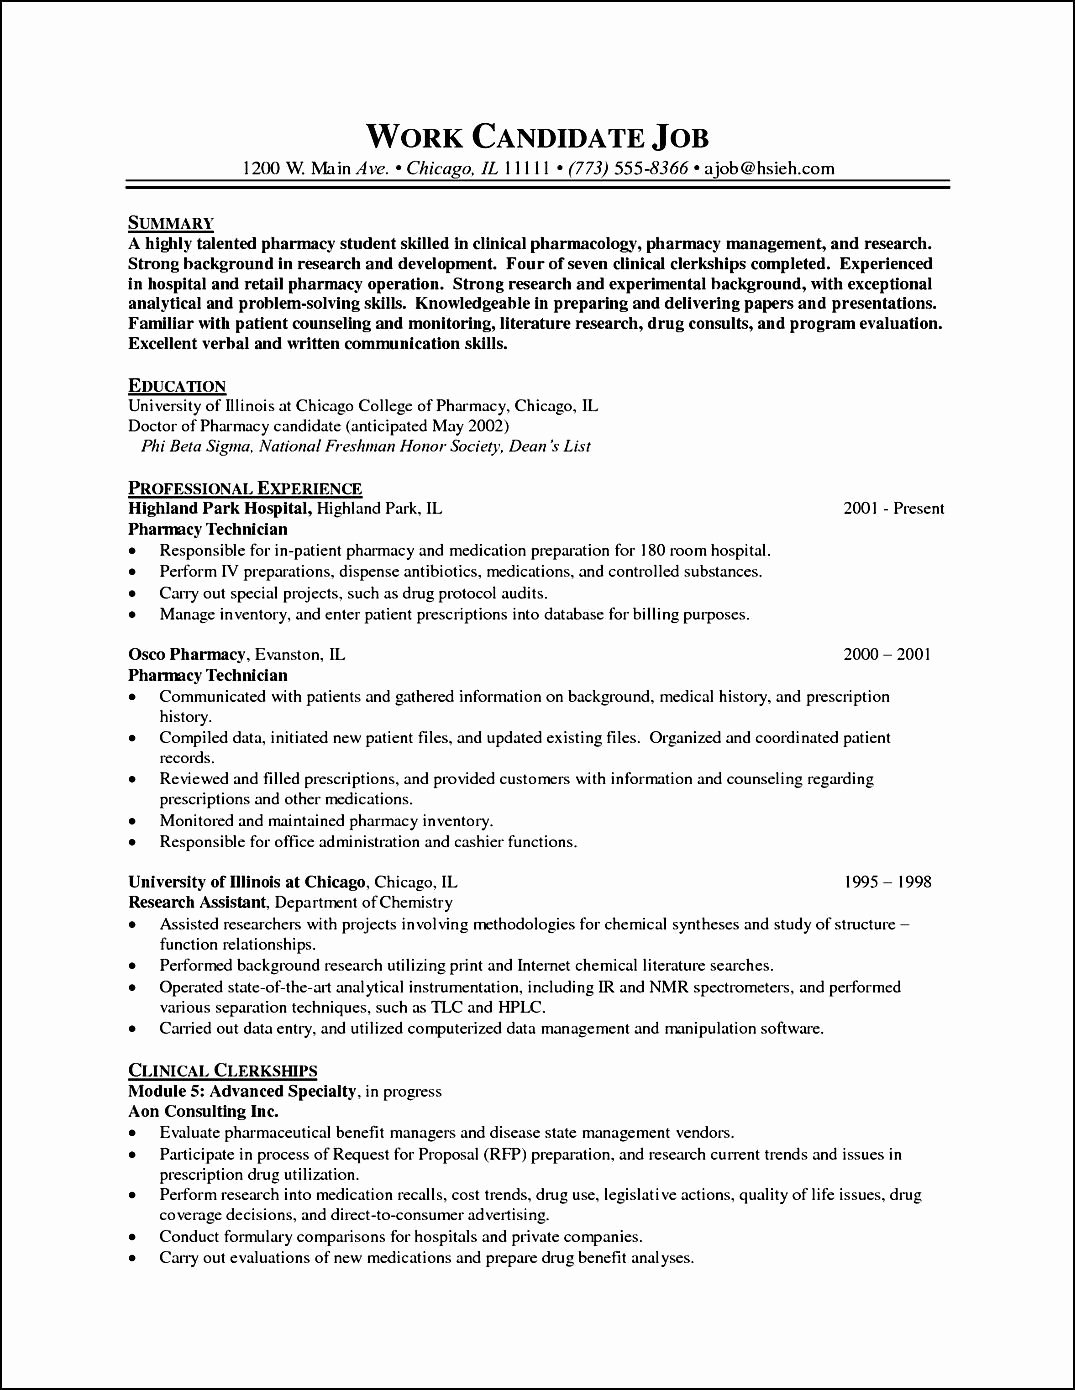 Pharmacy Curriculum Vitae Examples Fresh Pharmacy Curriculum Vitae Example Free Samples